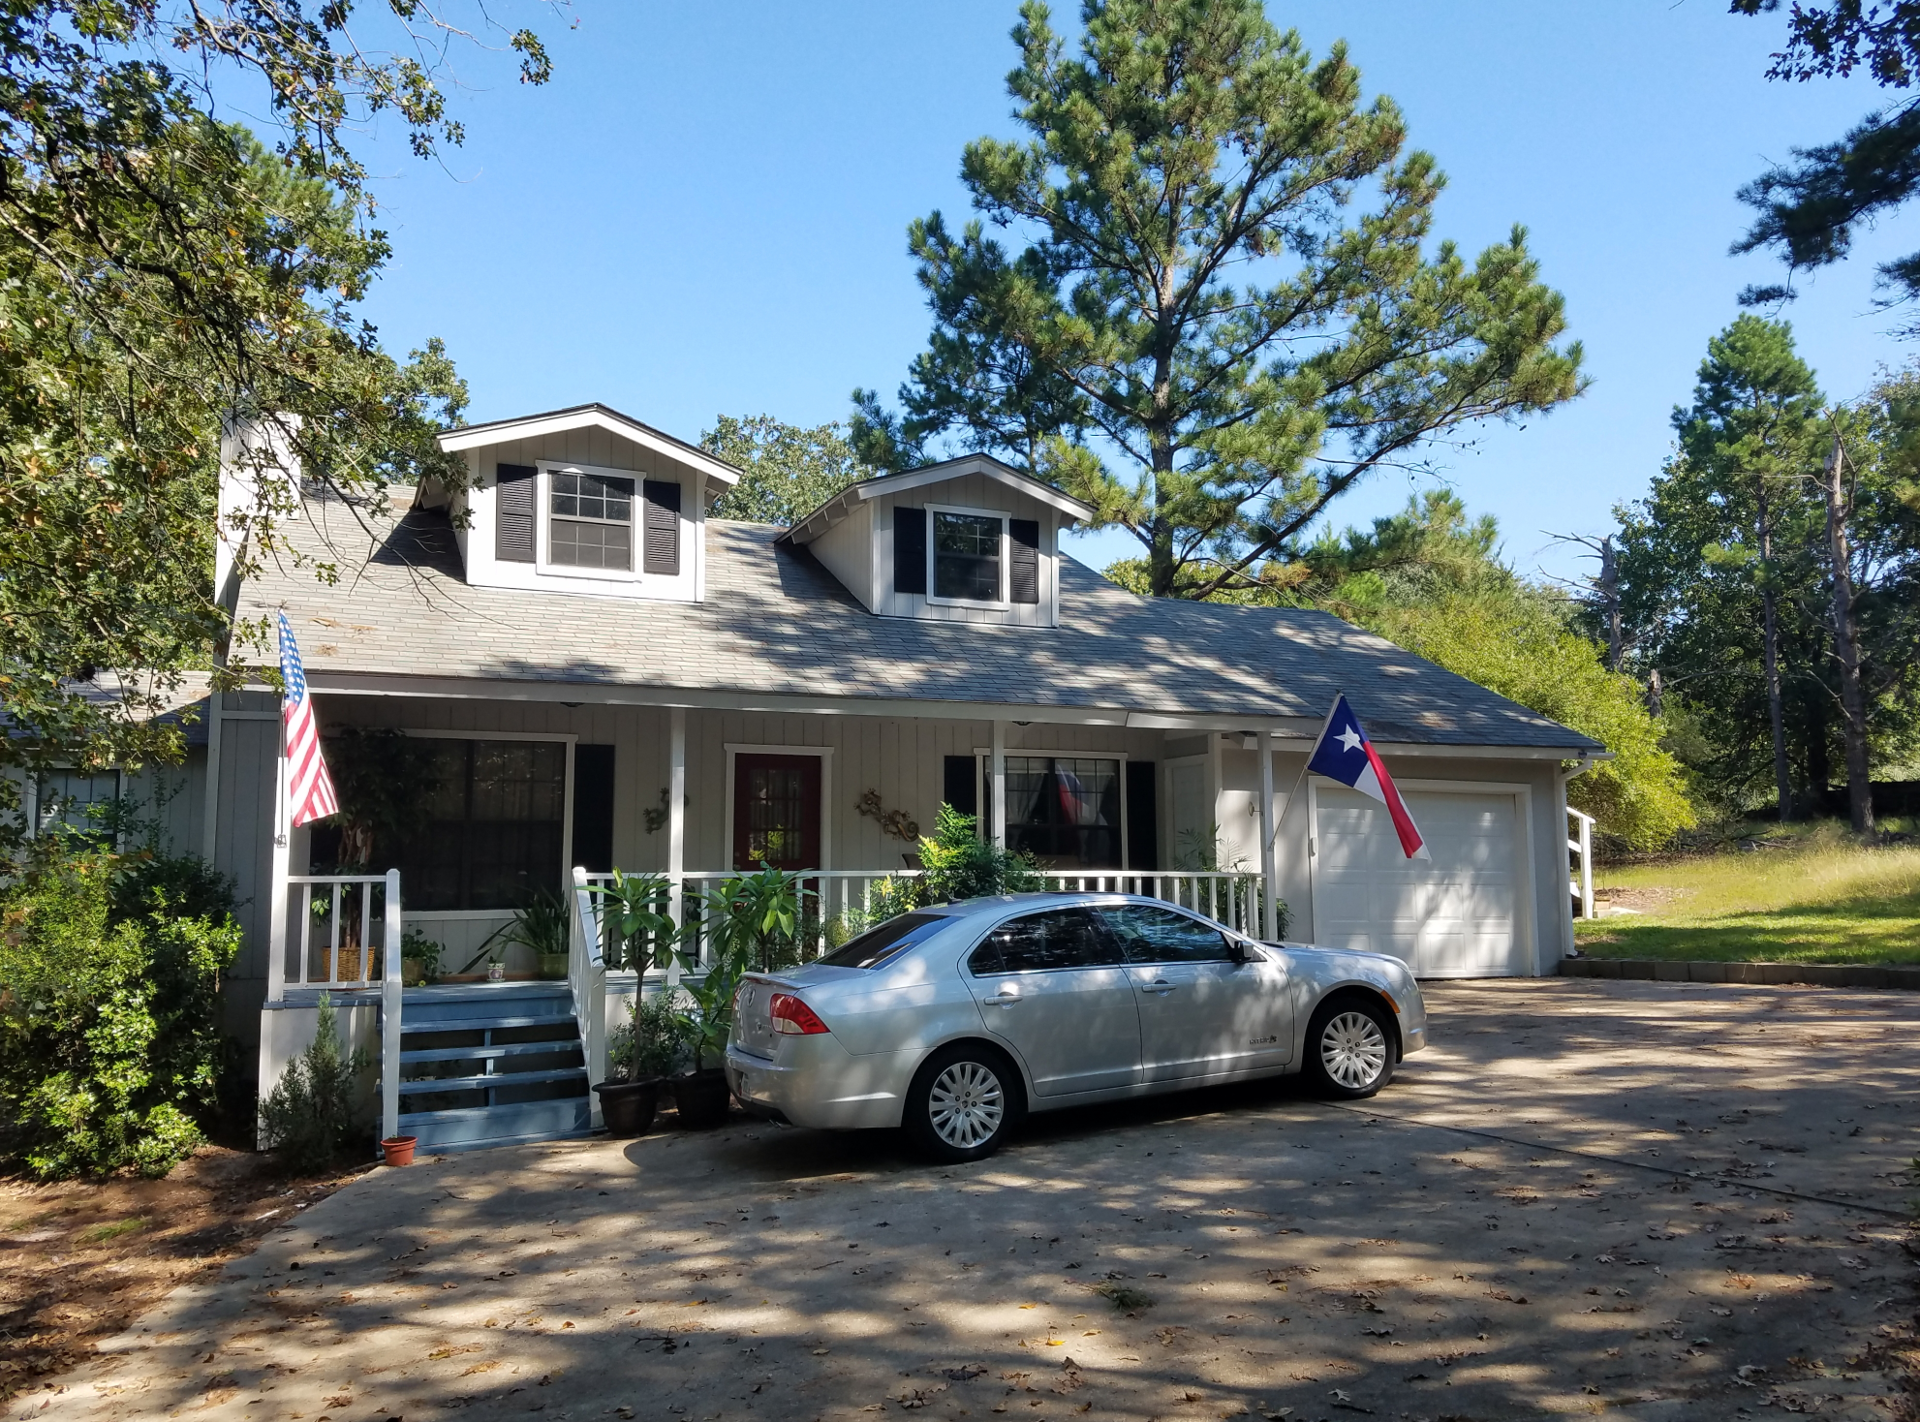 A photo of our house on Sonora Lane, September 2016